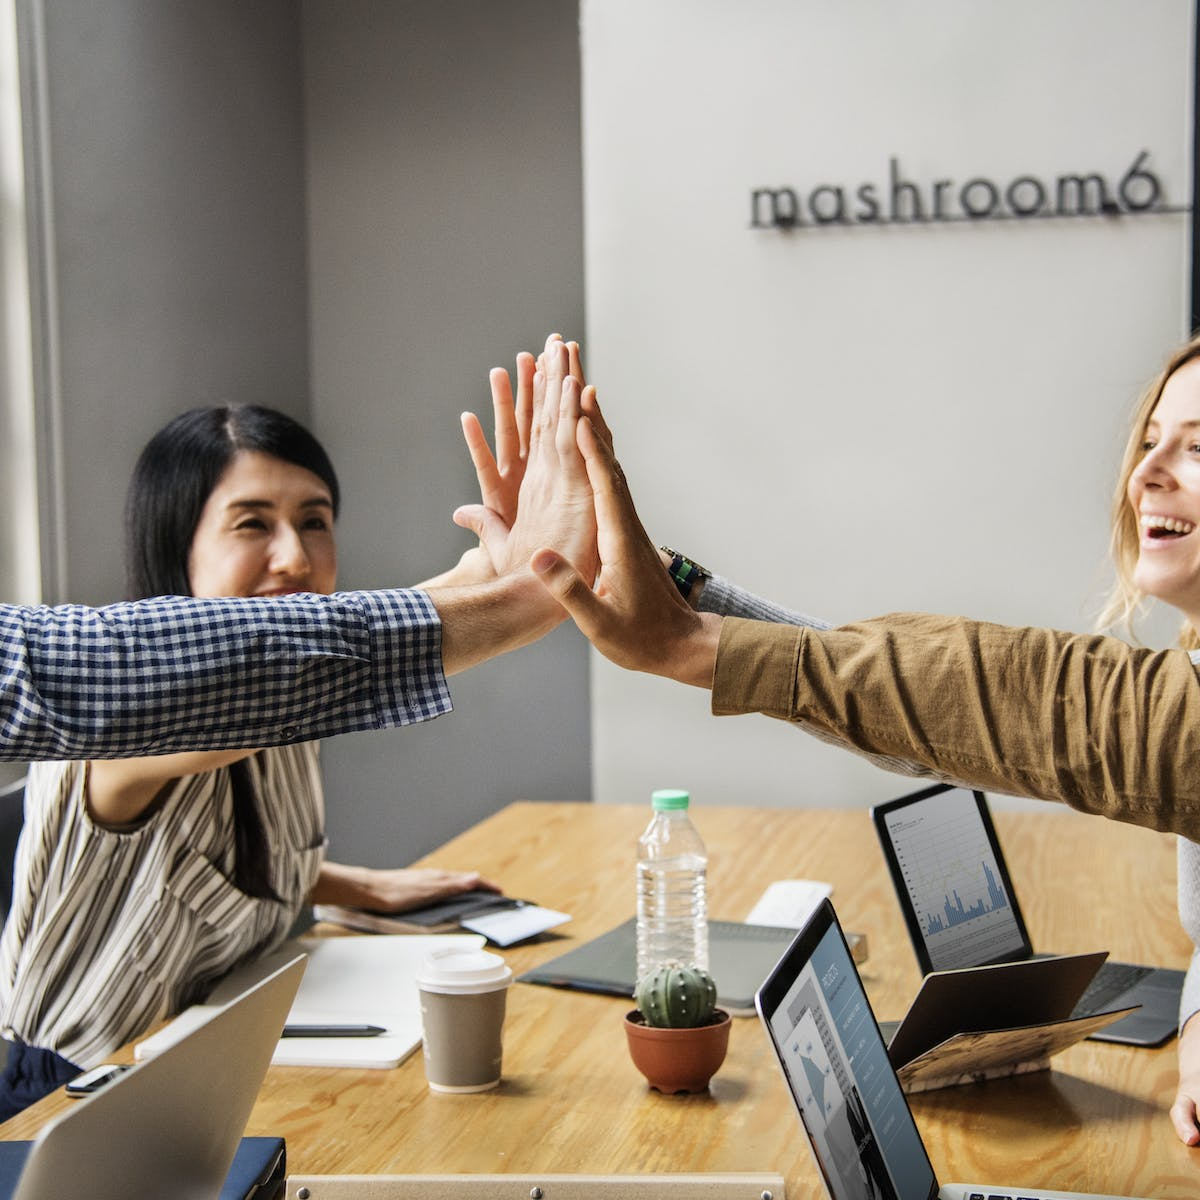 Titelbild-Performance-Talent-Management-High-Five-Team-Teamwork-pixabay-3656071-rawpixel